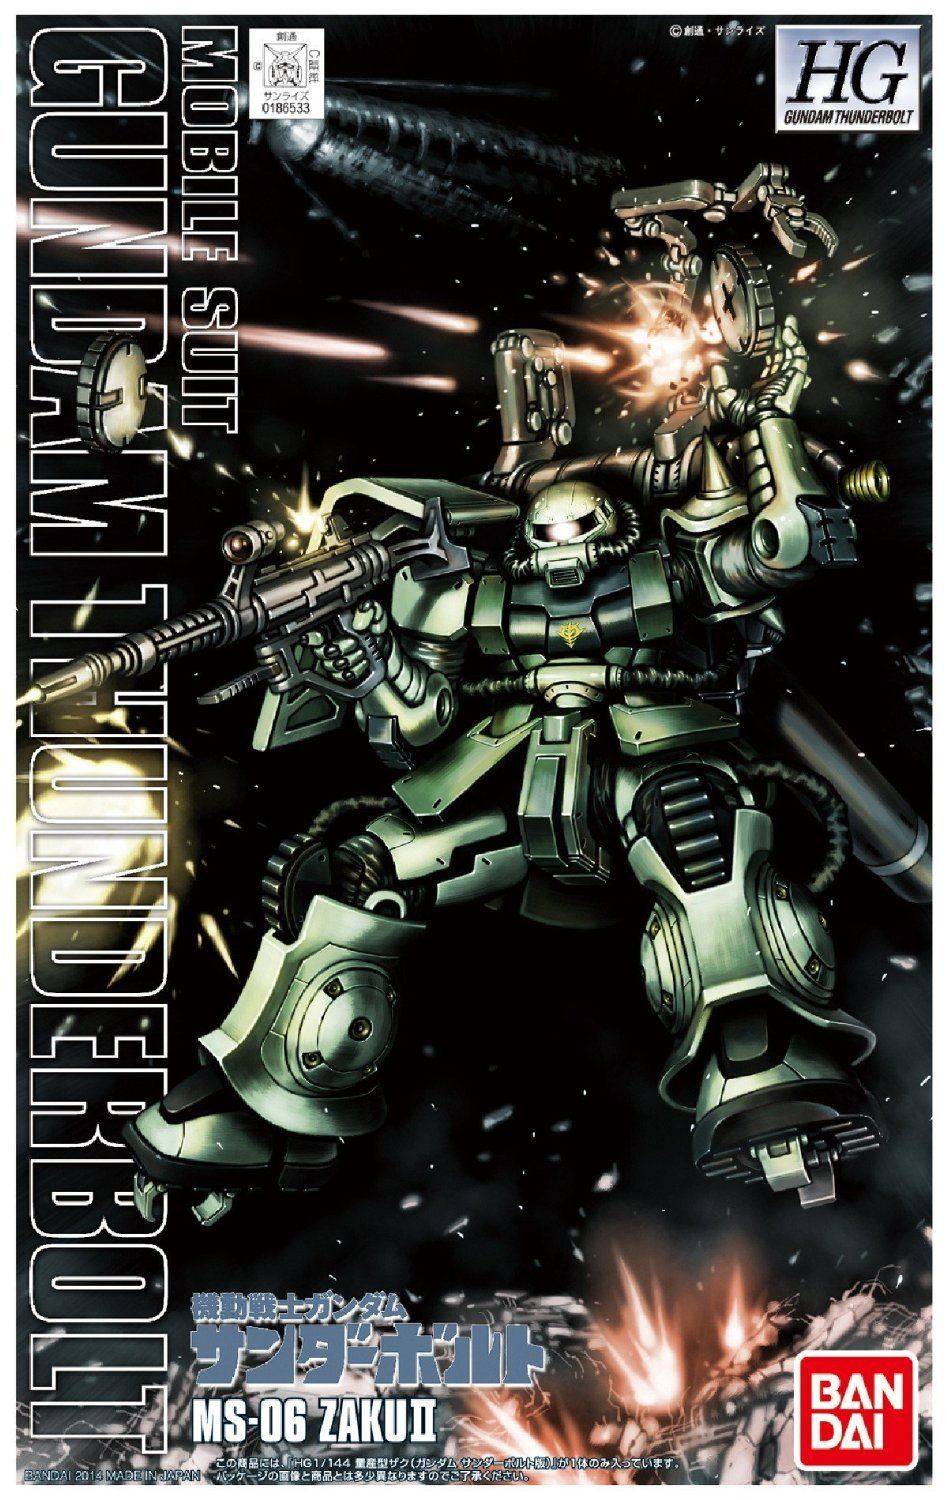 HG 1/144 Mass Production Type Zaku II (Gundam Thunderbolt Ver)